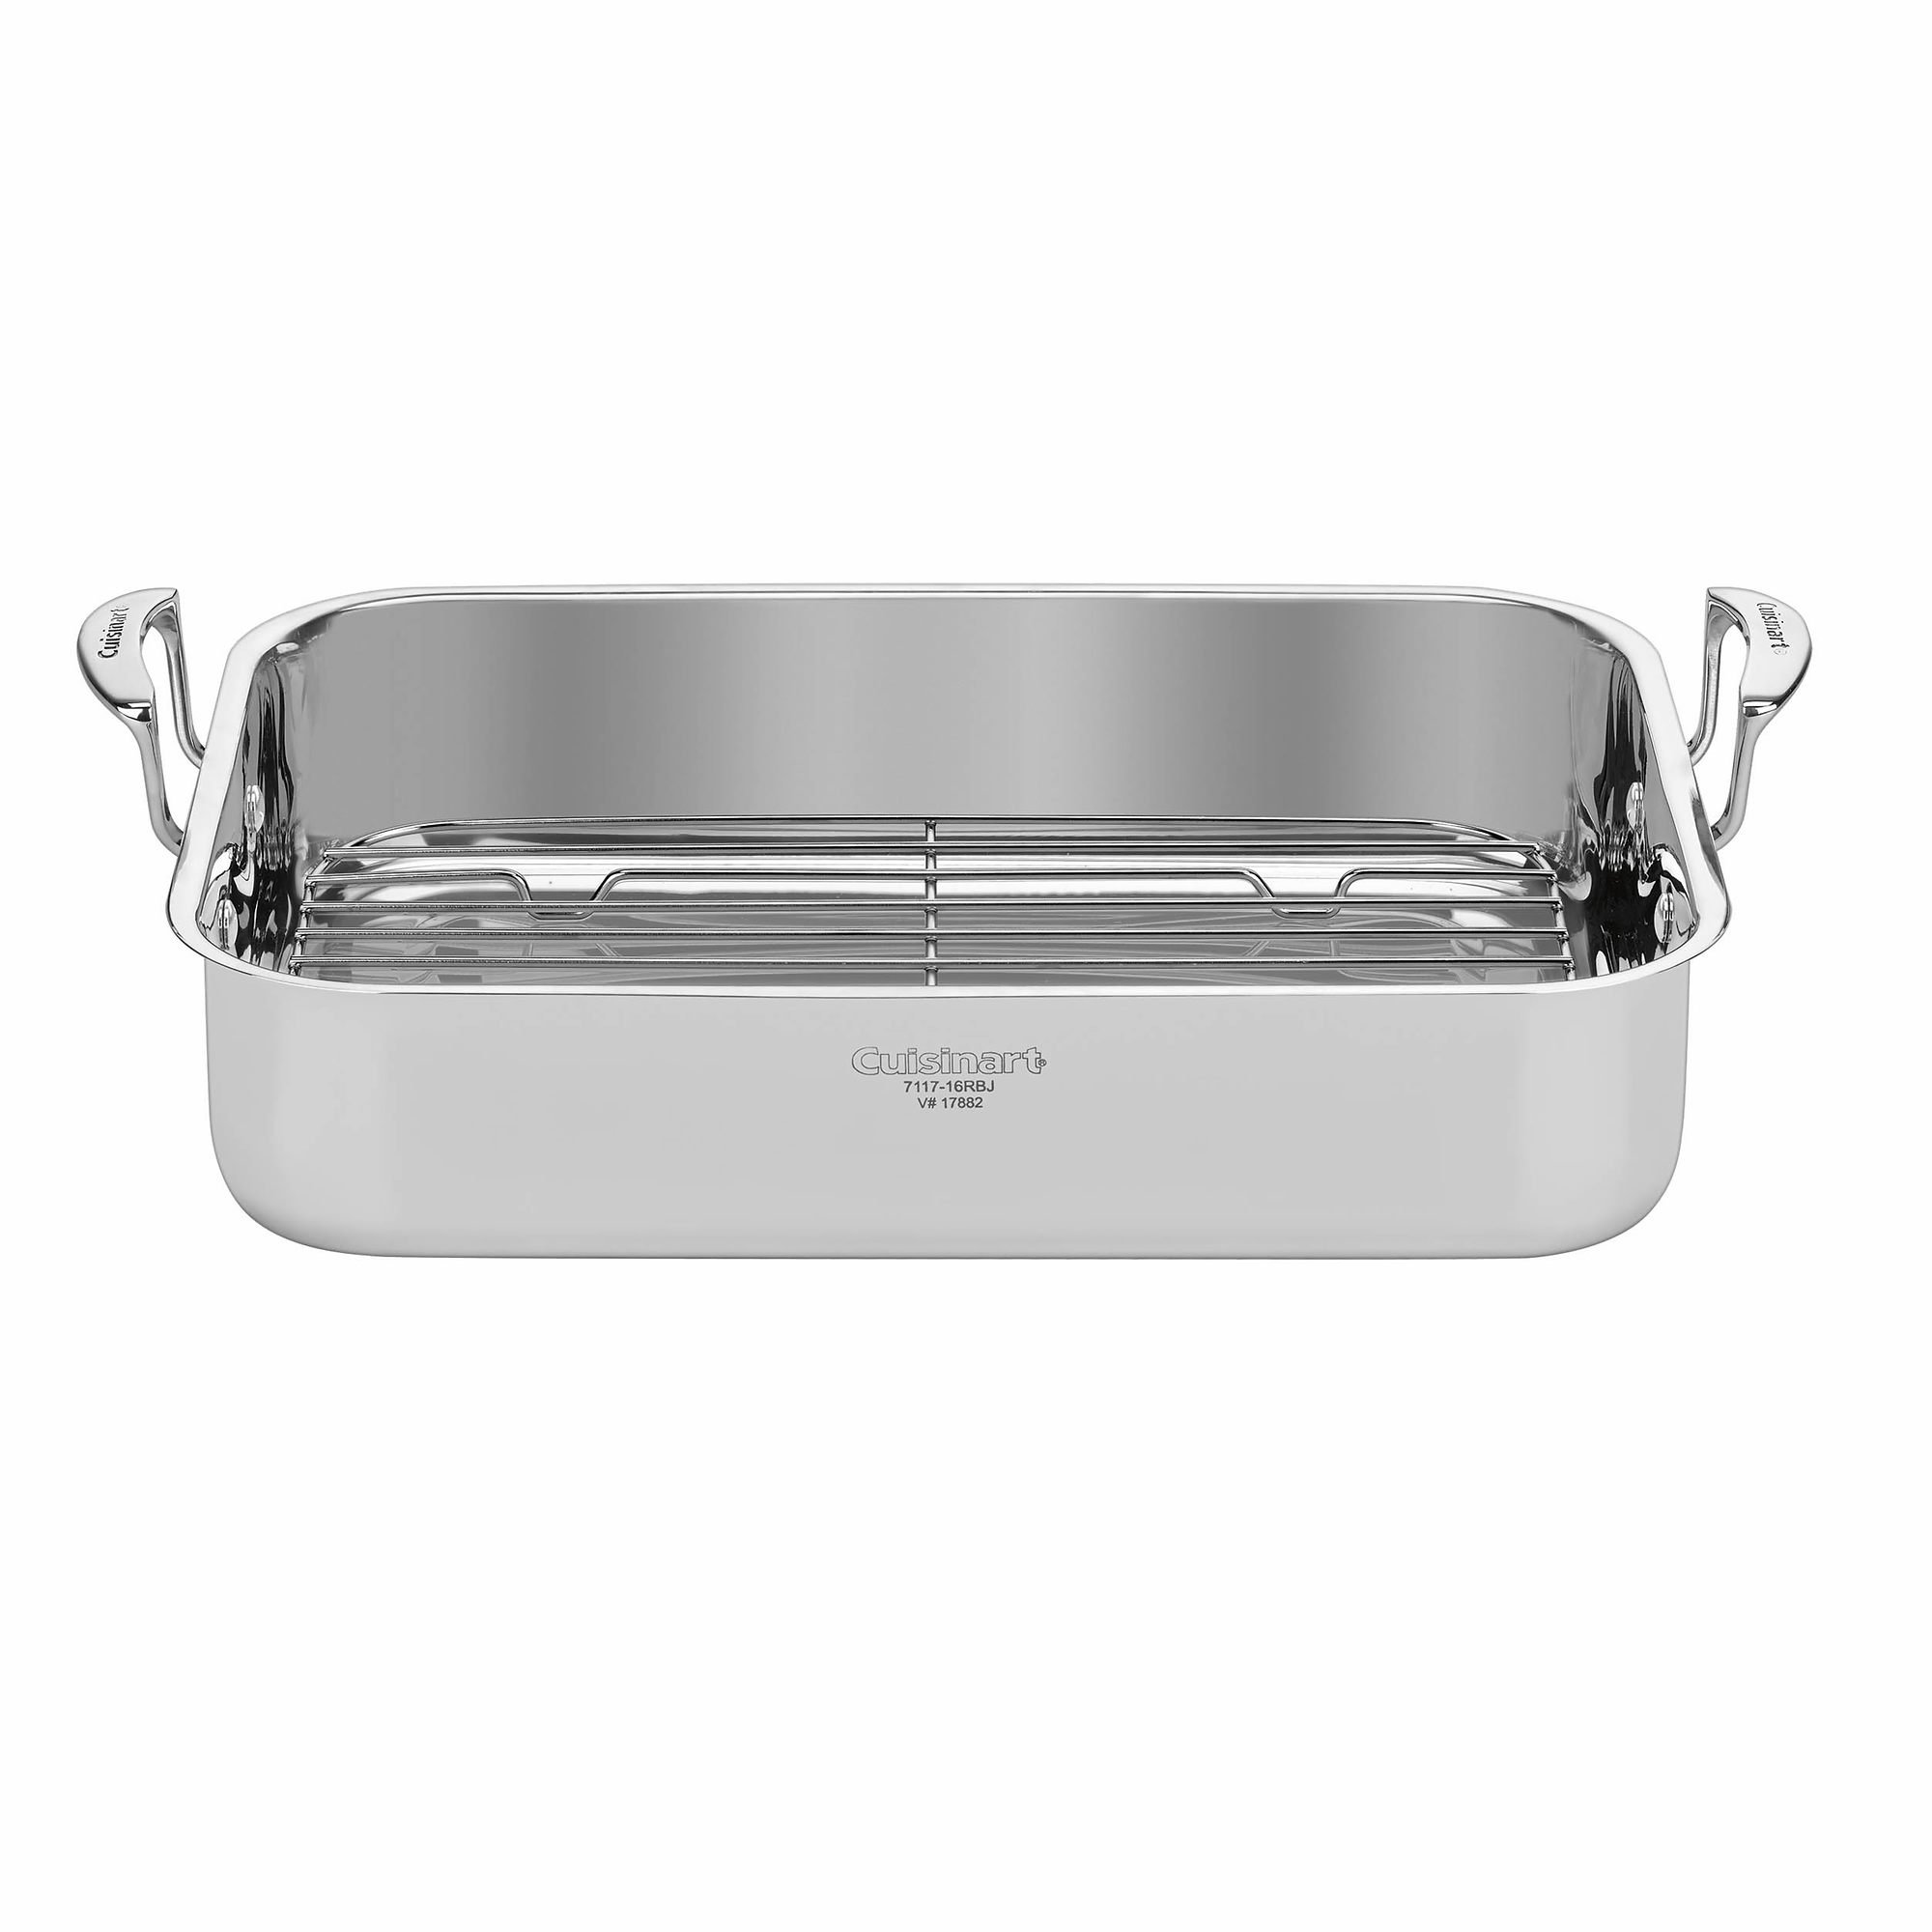 Cuisinart 16'' Stainless Steel Roaster with Rack - Riveted Stainless Steel Handles